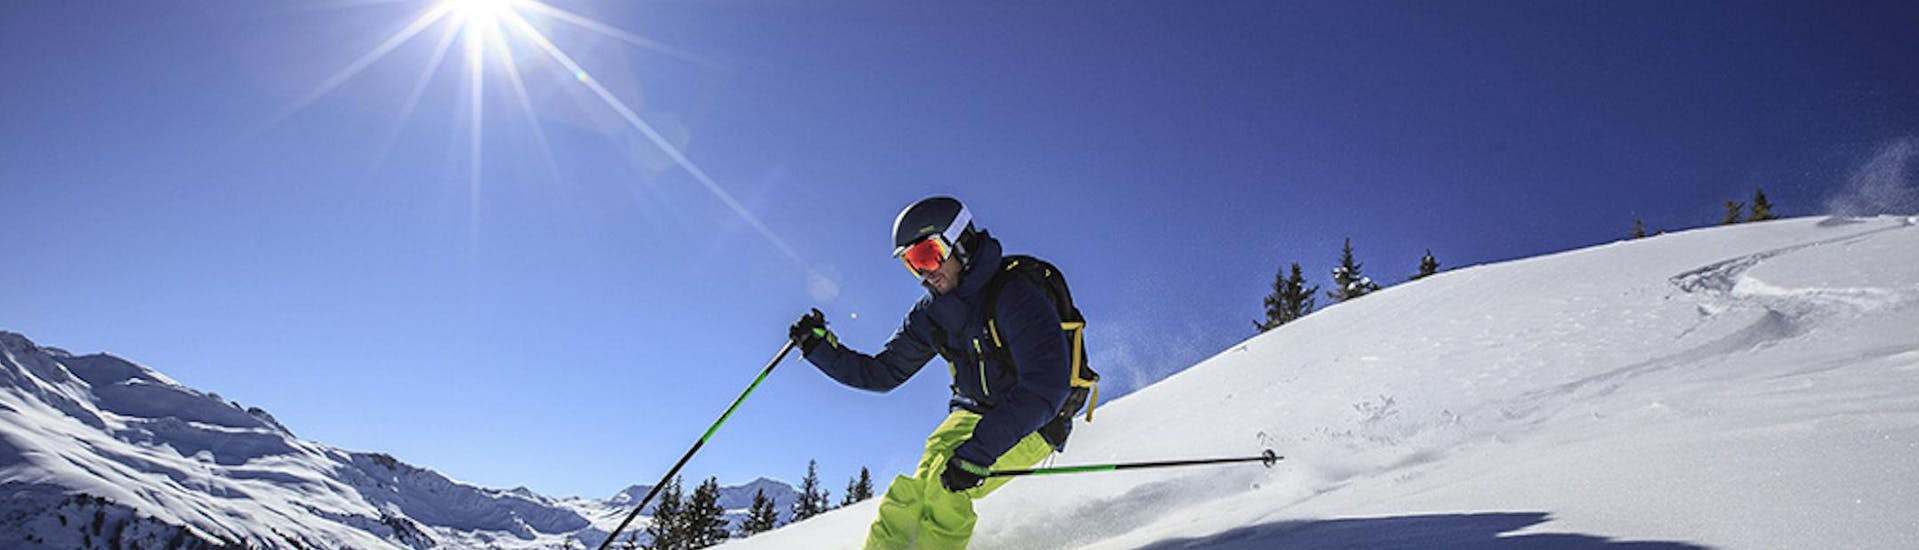 Private Ski Lessons for Adults of All Levels with Alpin Skischule Patscherkofel - Hero image